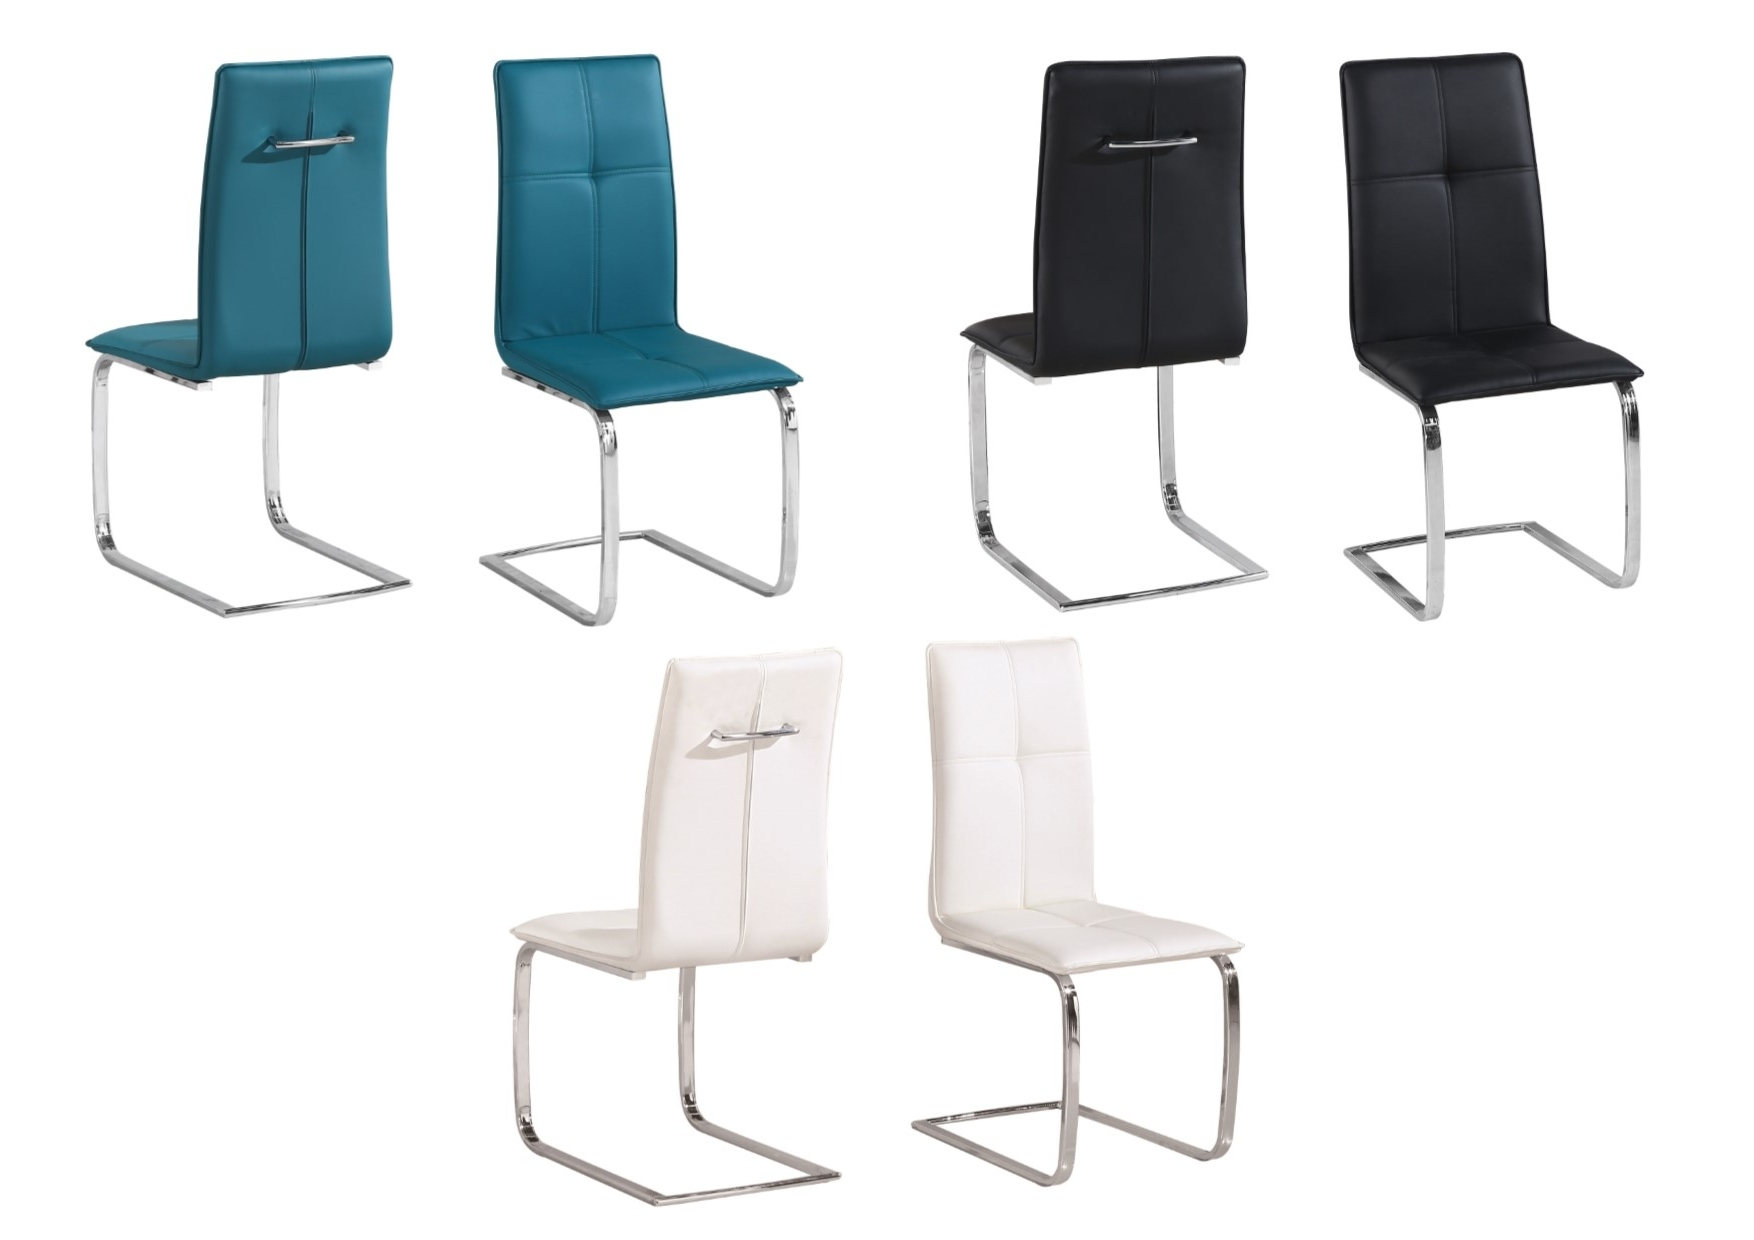 Chrome Dining Chairs Intended For 2018 Lpd Opus Faux Leather & Chrome Dining Chairs – Black, Teal, White (View 18 of 25)